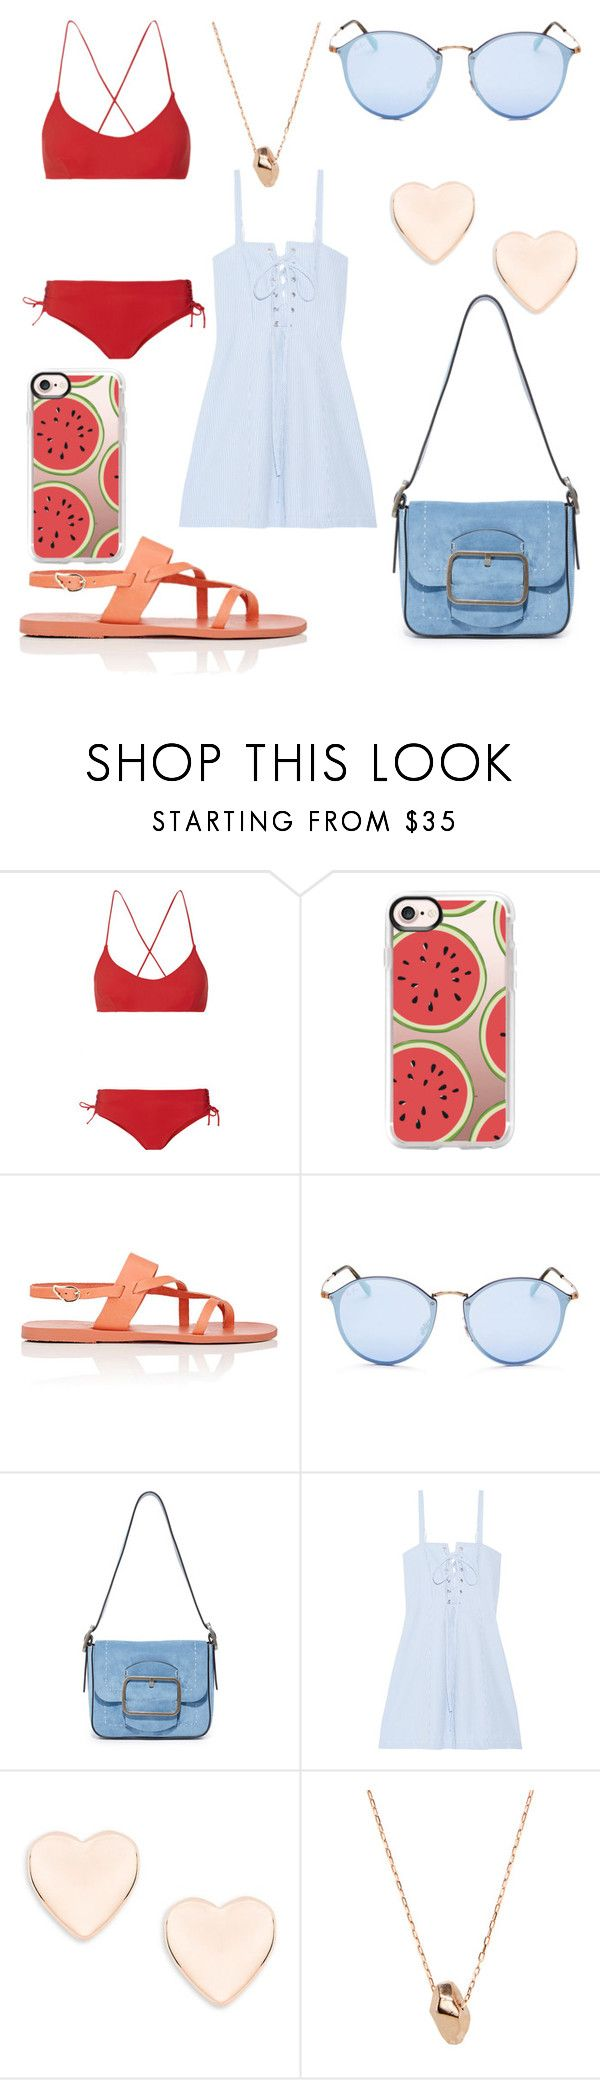 """Suggested Items #3"" by thegreendino ❤ liked on Polyvore featuring Emma Pake, Casetify, Ancient Greek Sandals, Ray-Ban, Tory Burch, Solid & Striped, Ted Baker and Gemma Crus"